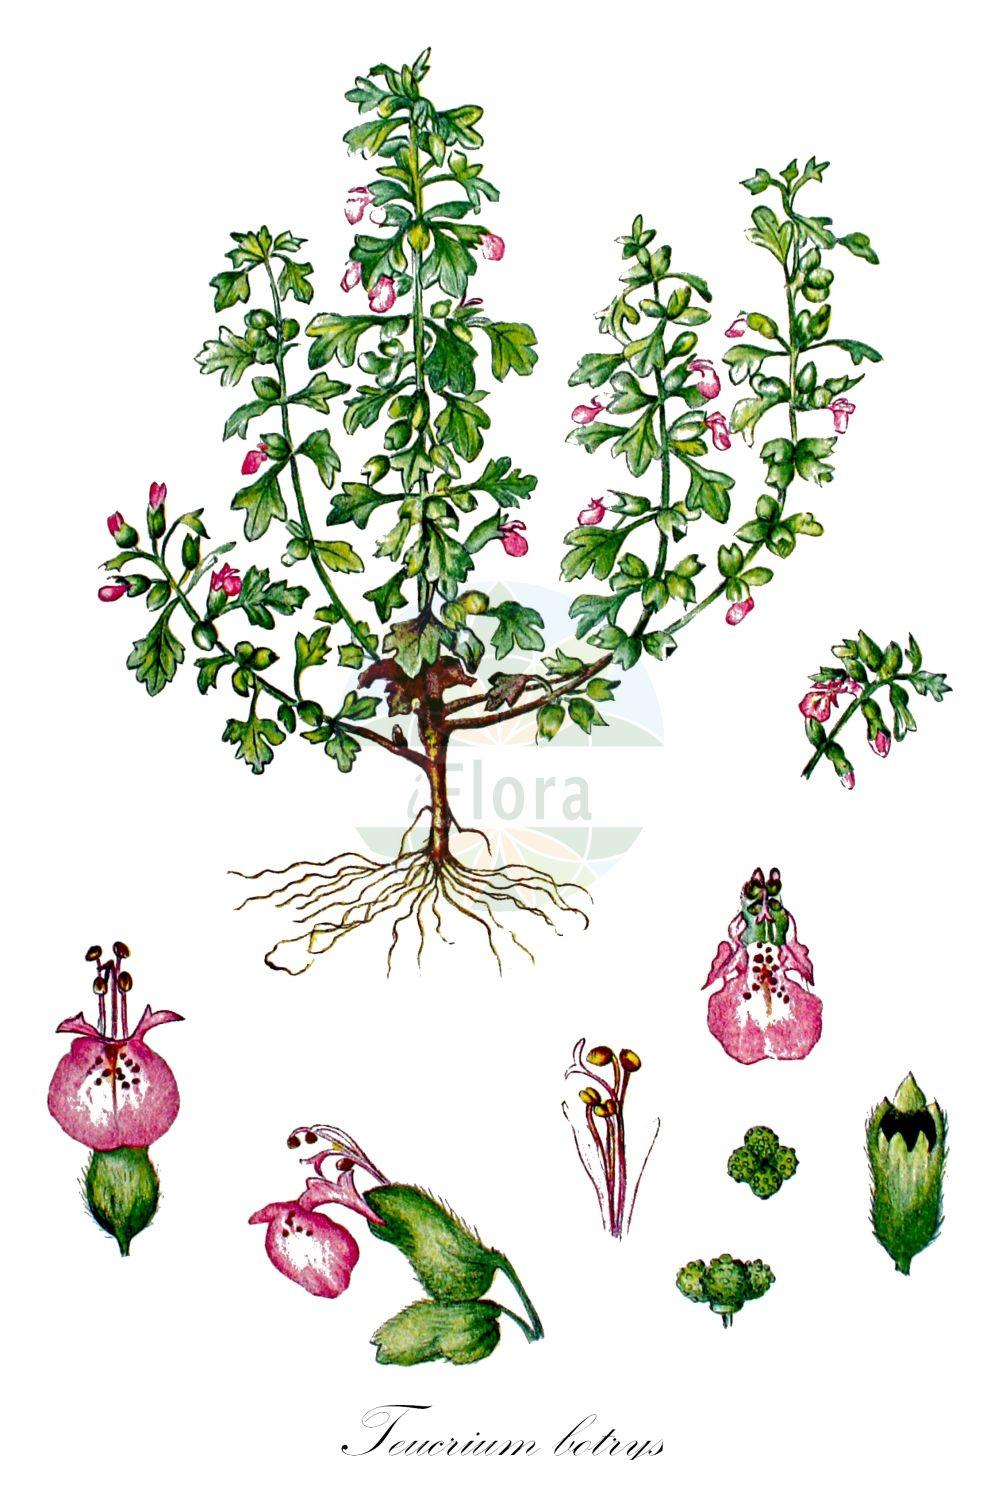 Historische Abbildung von Teucrium botrys (Trauben-Gamander - Cut-leaved Germander). Das Bild zeigt Blatt, Bluete, Frucht und Same. ---- Historical Drawing of Teucrium botrys (Trauben-Gamander - Cut-leaved Germander).The image is showing leaf, flower, fruit and seed.(Teucrium botrys,Trauben-Gamander,Cut-leaved Germander,Botrys chamaedryoides,Chamaedrys botrys,Chamaedrys laciniata,Monochilon bipinnatifidus,Scorodonia botrys,Teucrium alpinum,Teucrium botrydium,Teucrium chamaedryoides,Trixago botrys,Feld-Gamander,Cutleaf Germander,Teucrium,Gamander,Germander,Lamiaceae,Lippenbluetengewaechse;Lippenbluetler,Nettle family,Blatt,Bluete,Frucht,Same,leaf,flower,fruit,seed,Kops (1800-1934))